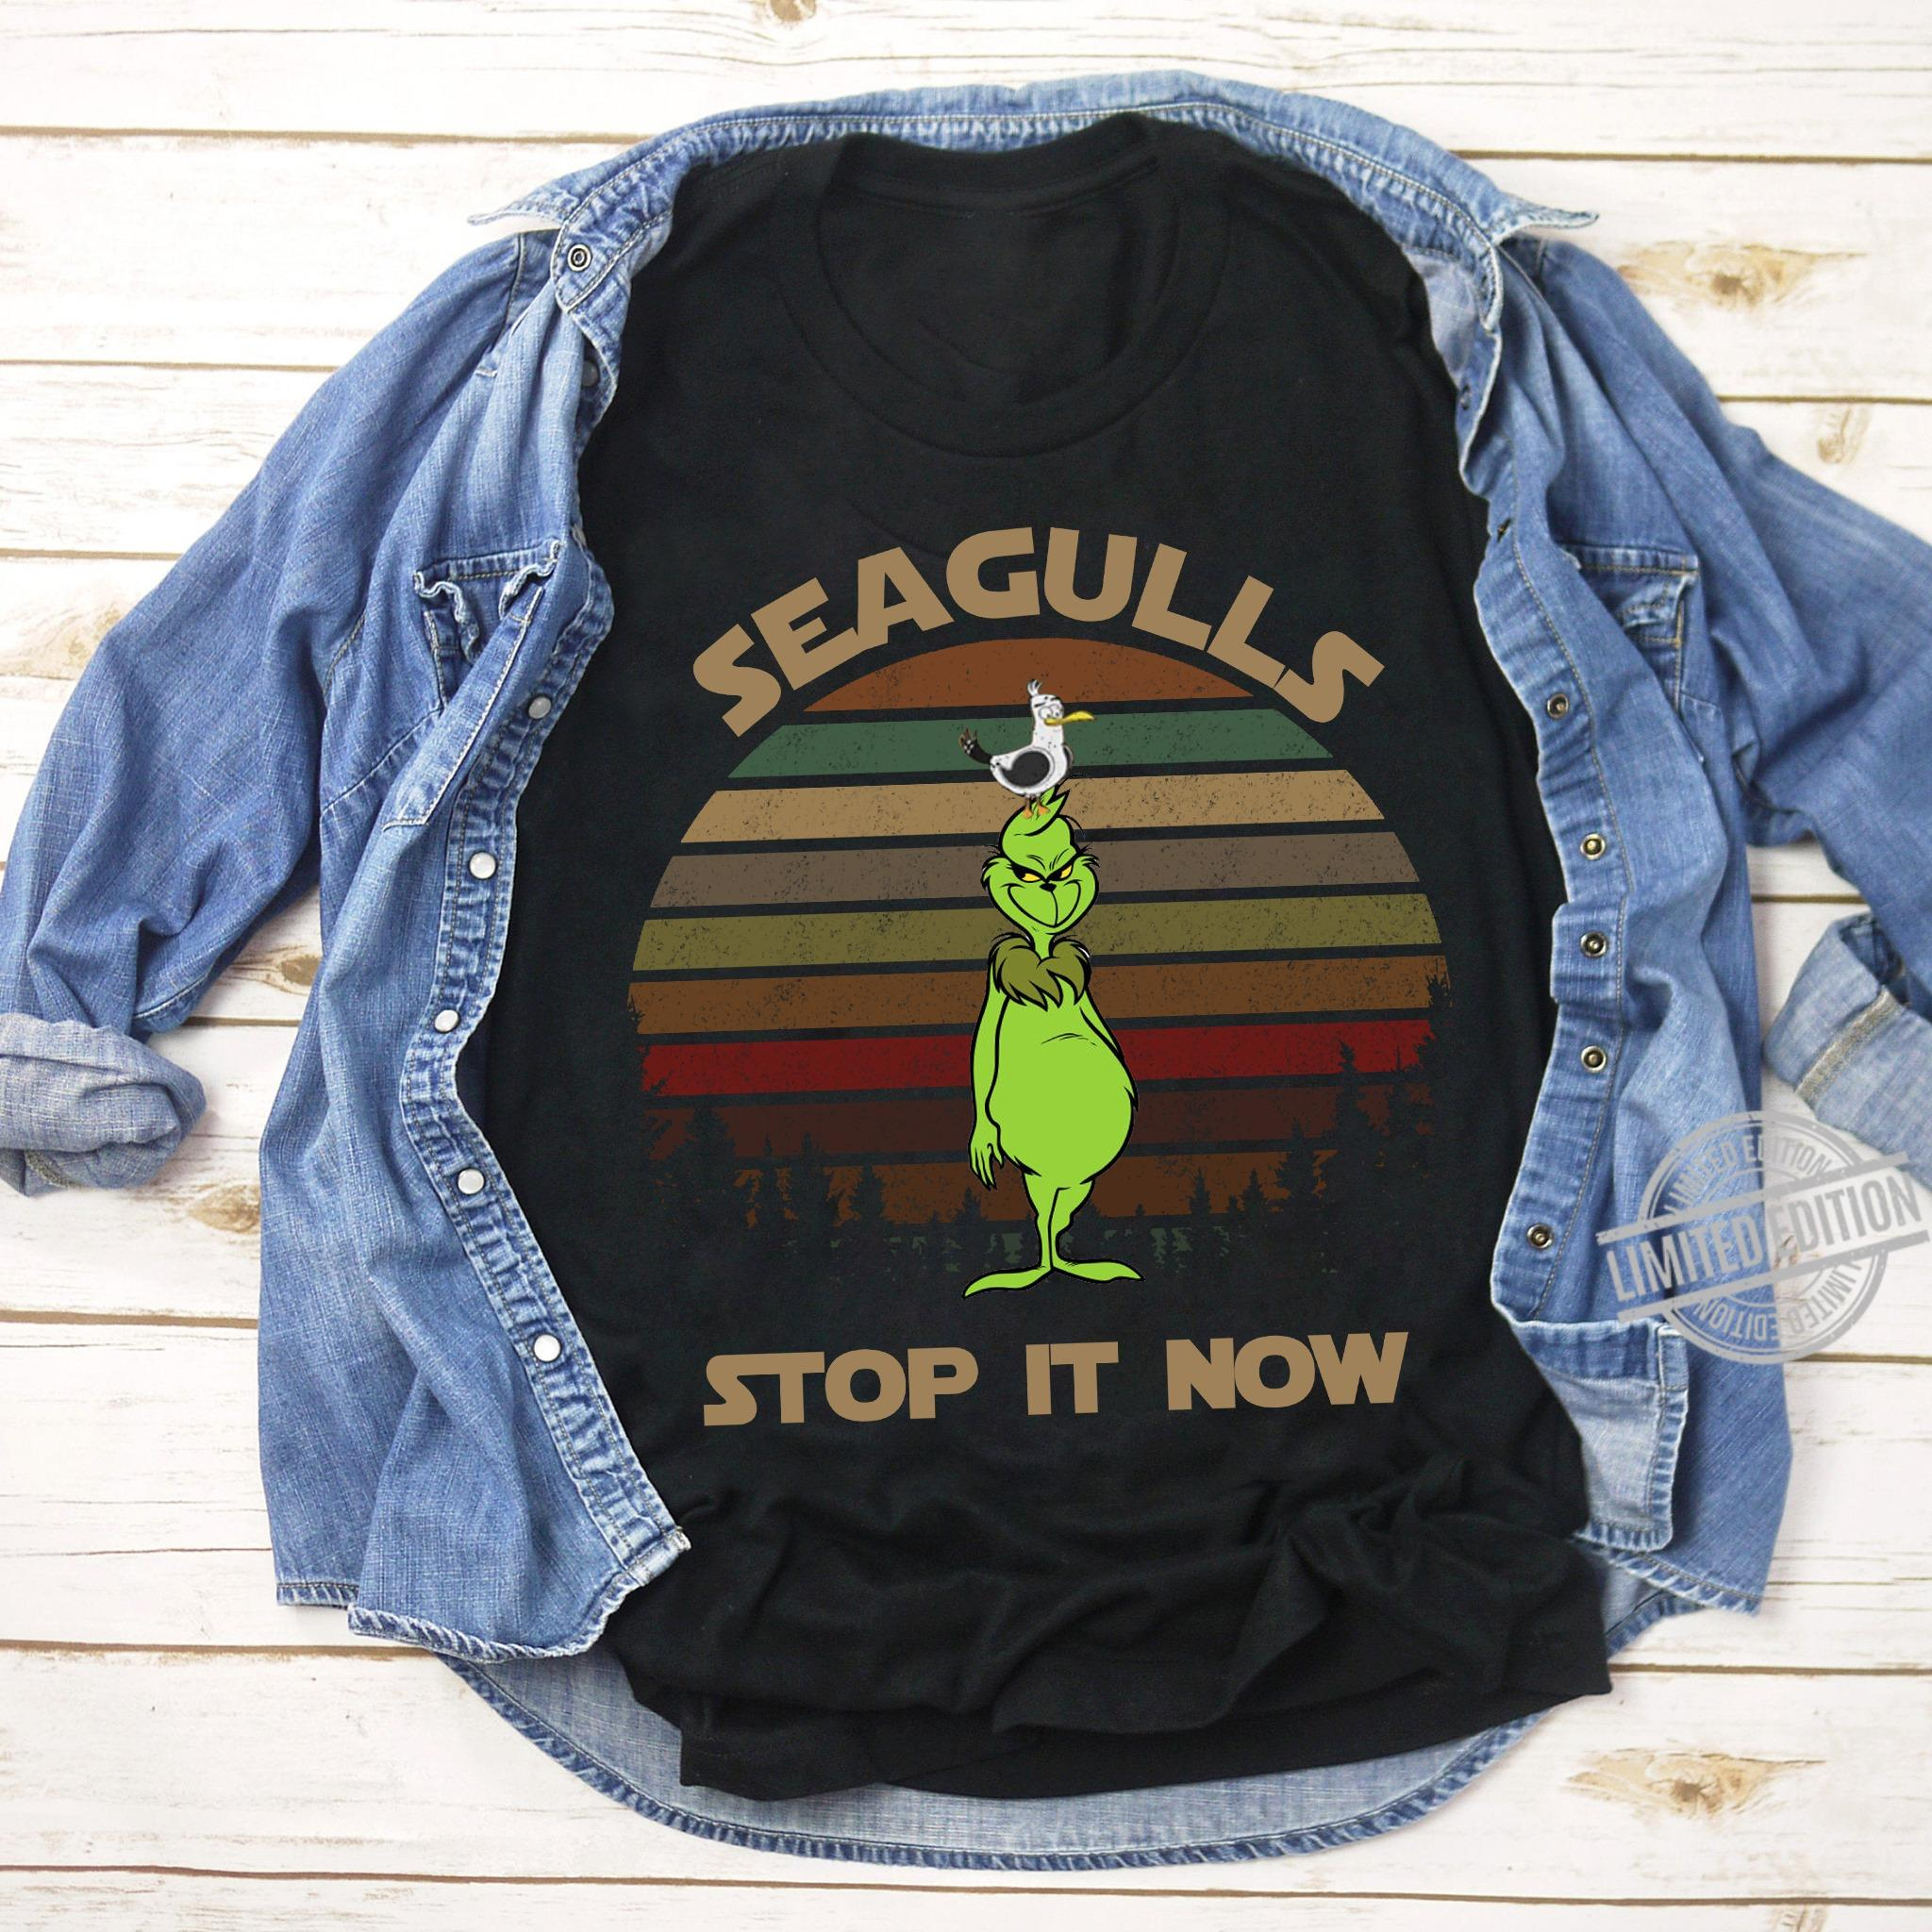 Grinch Seagulls Stop It Now Shirt